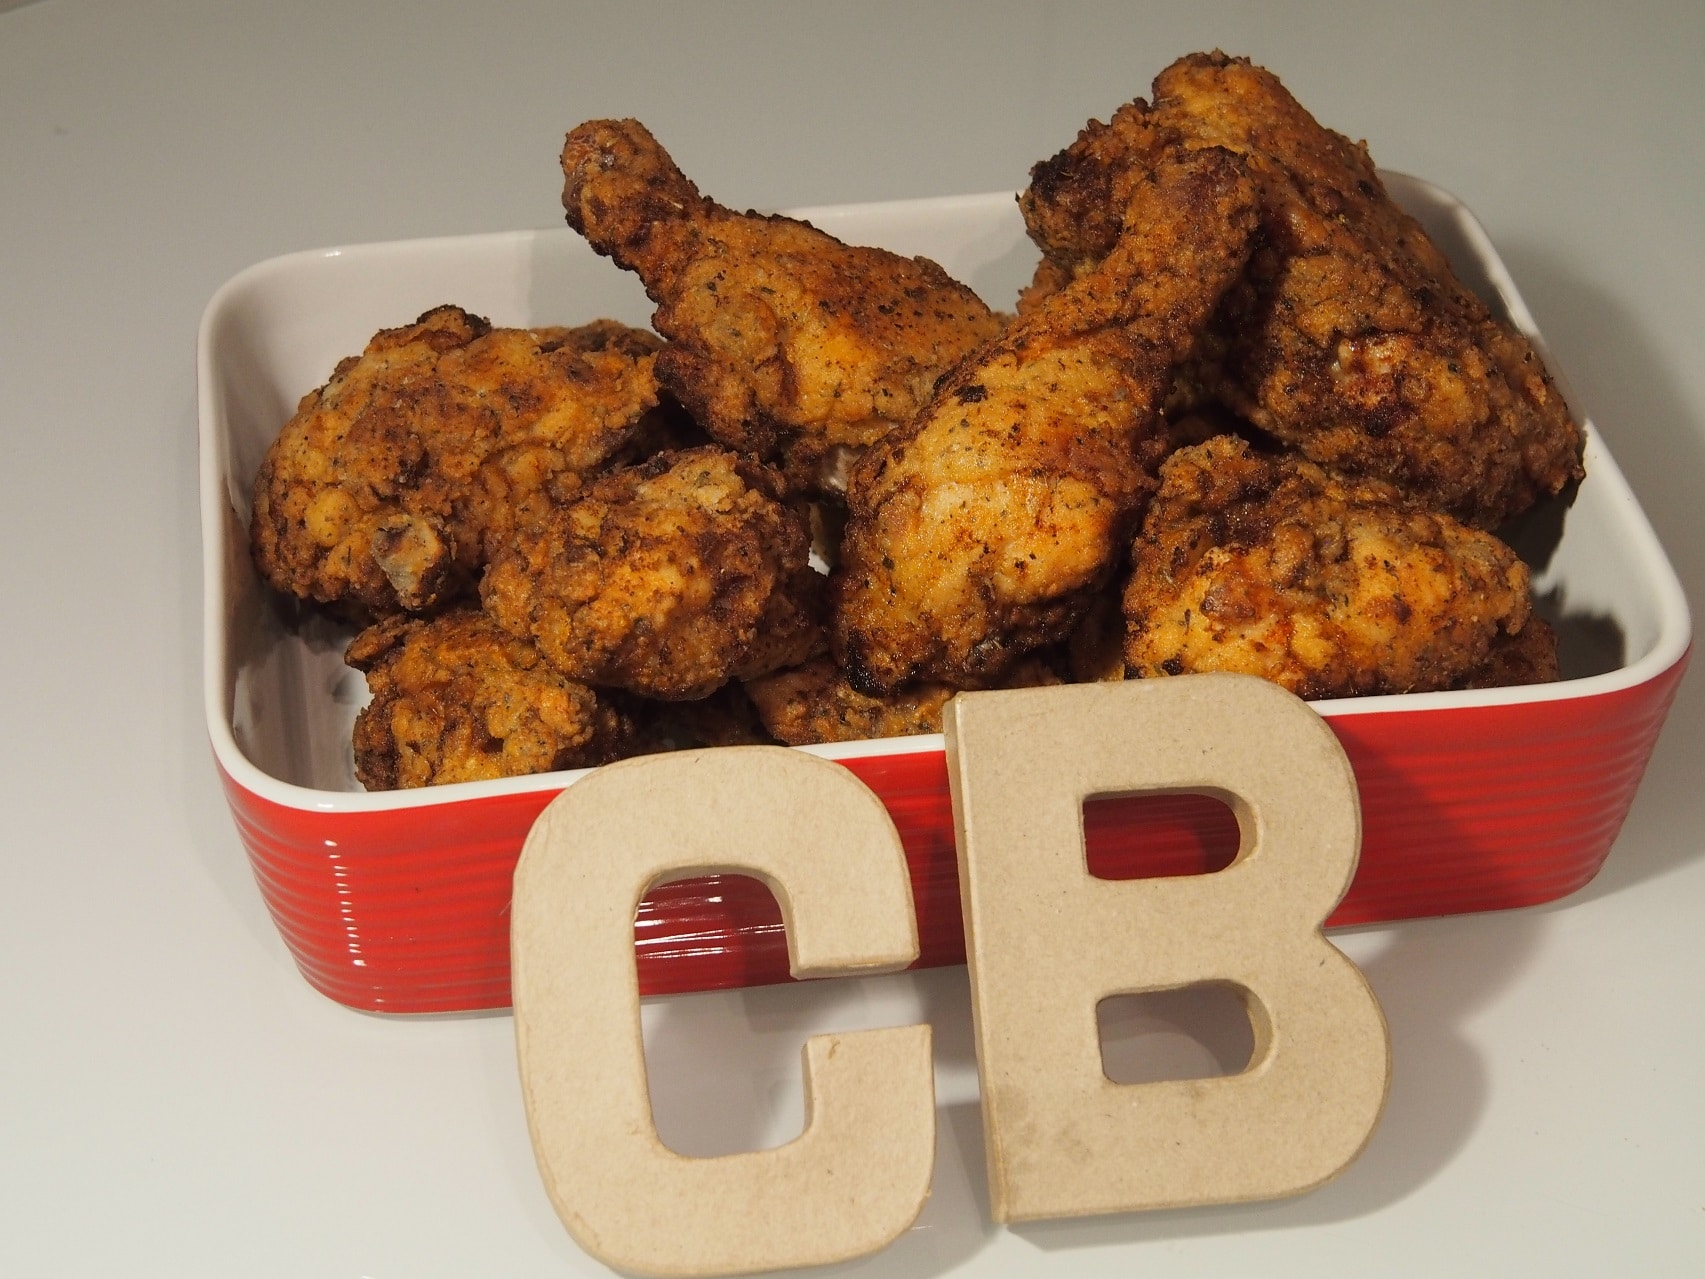 Cooking Blog - Southern Style Whole Fried Chicken 7